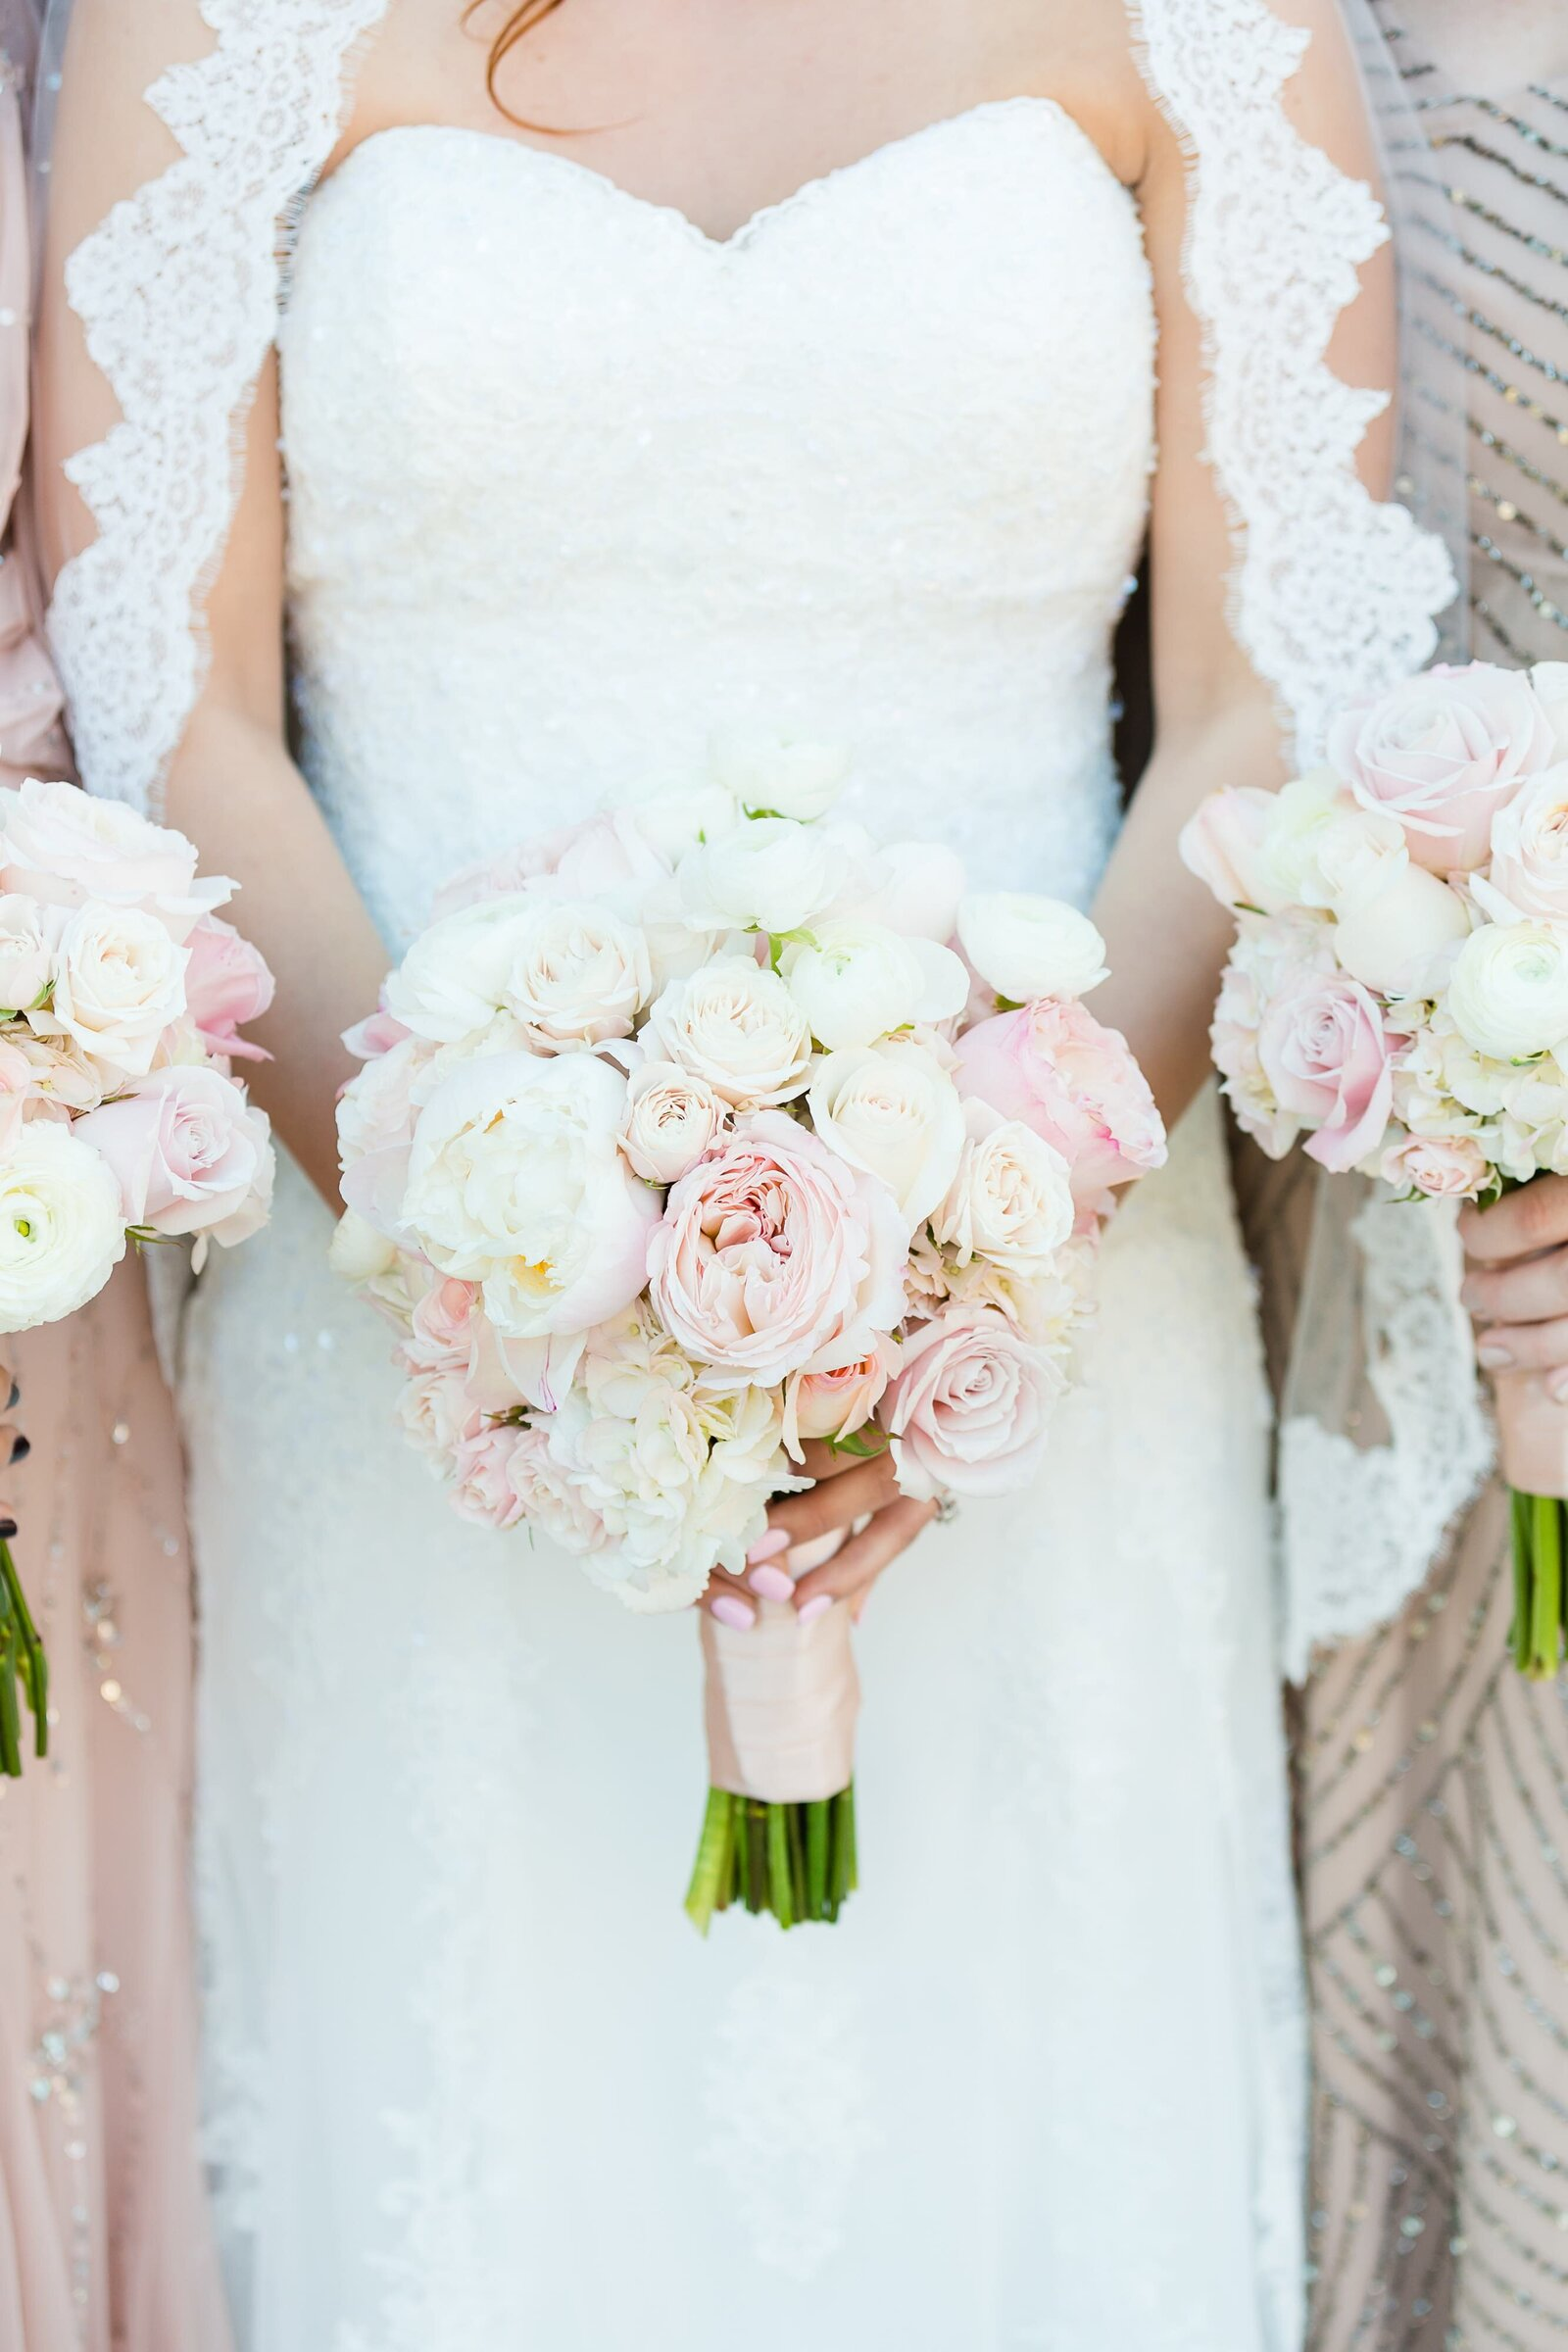 bridal-bouquet-blush-and-white-flowers